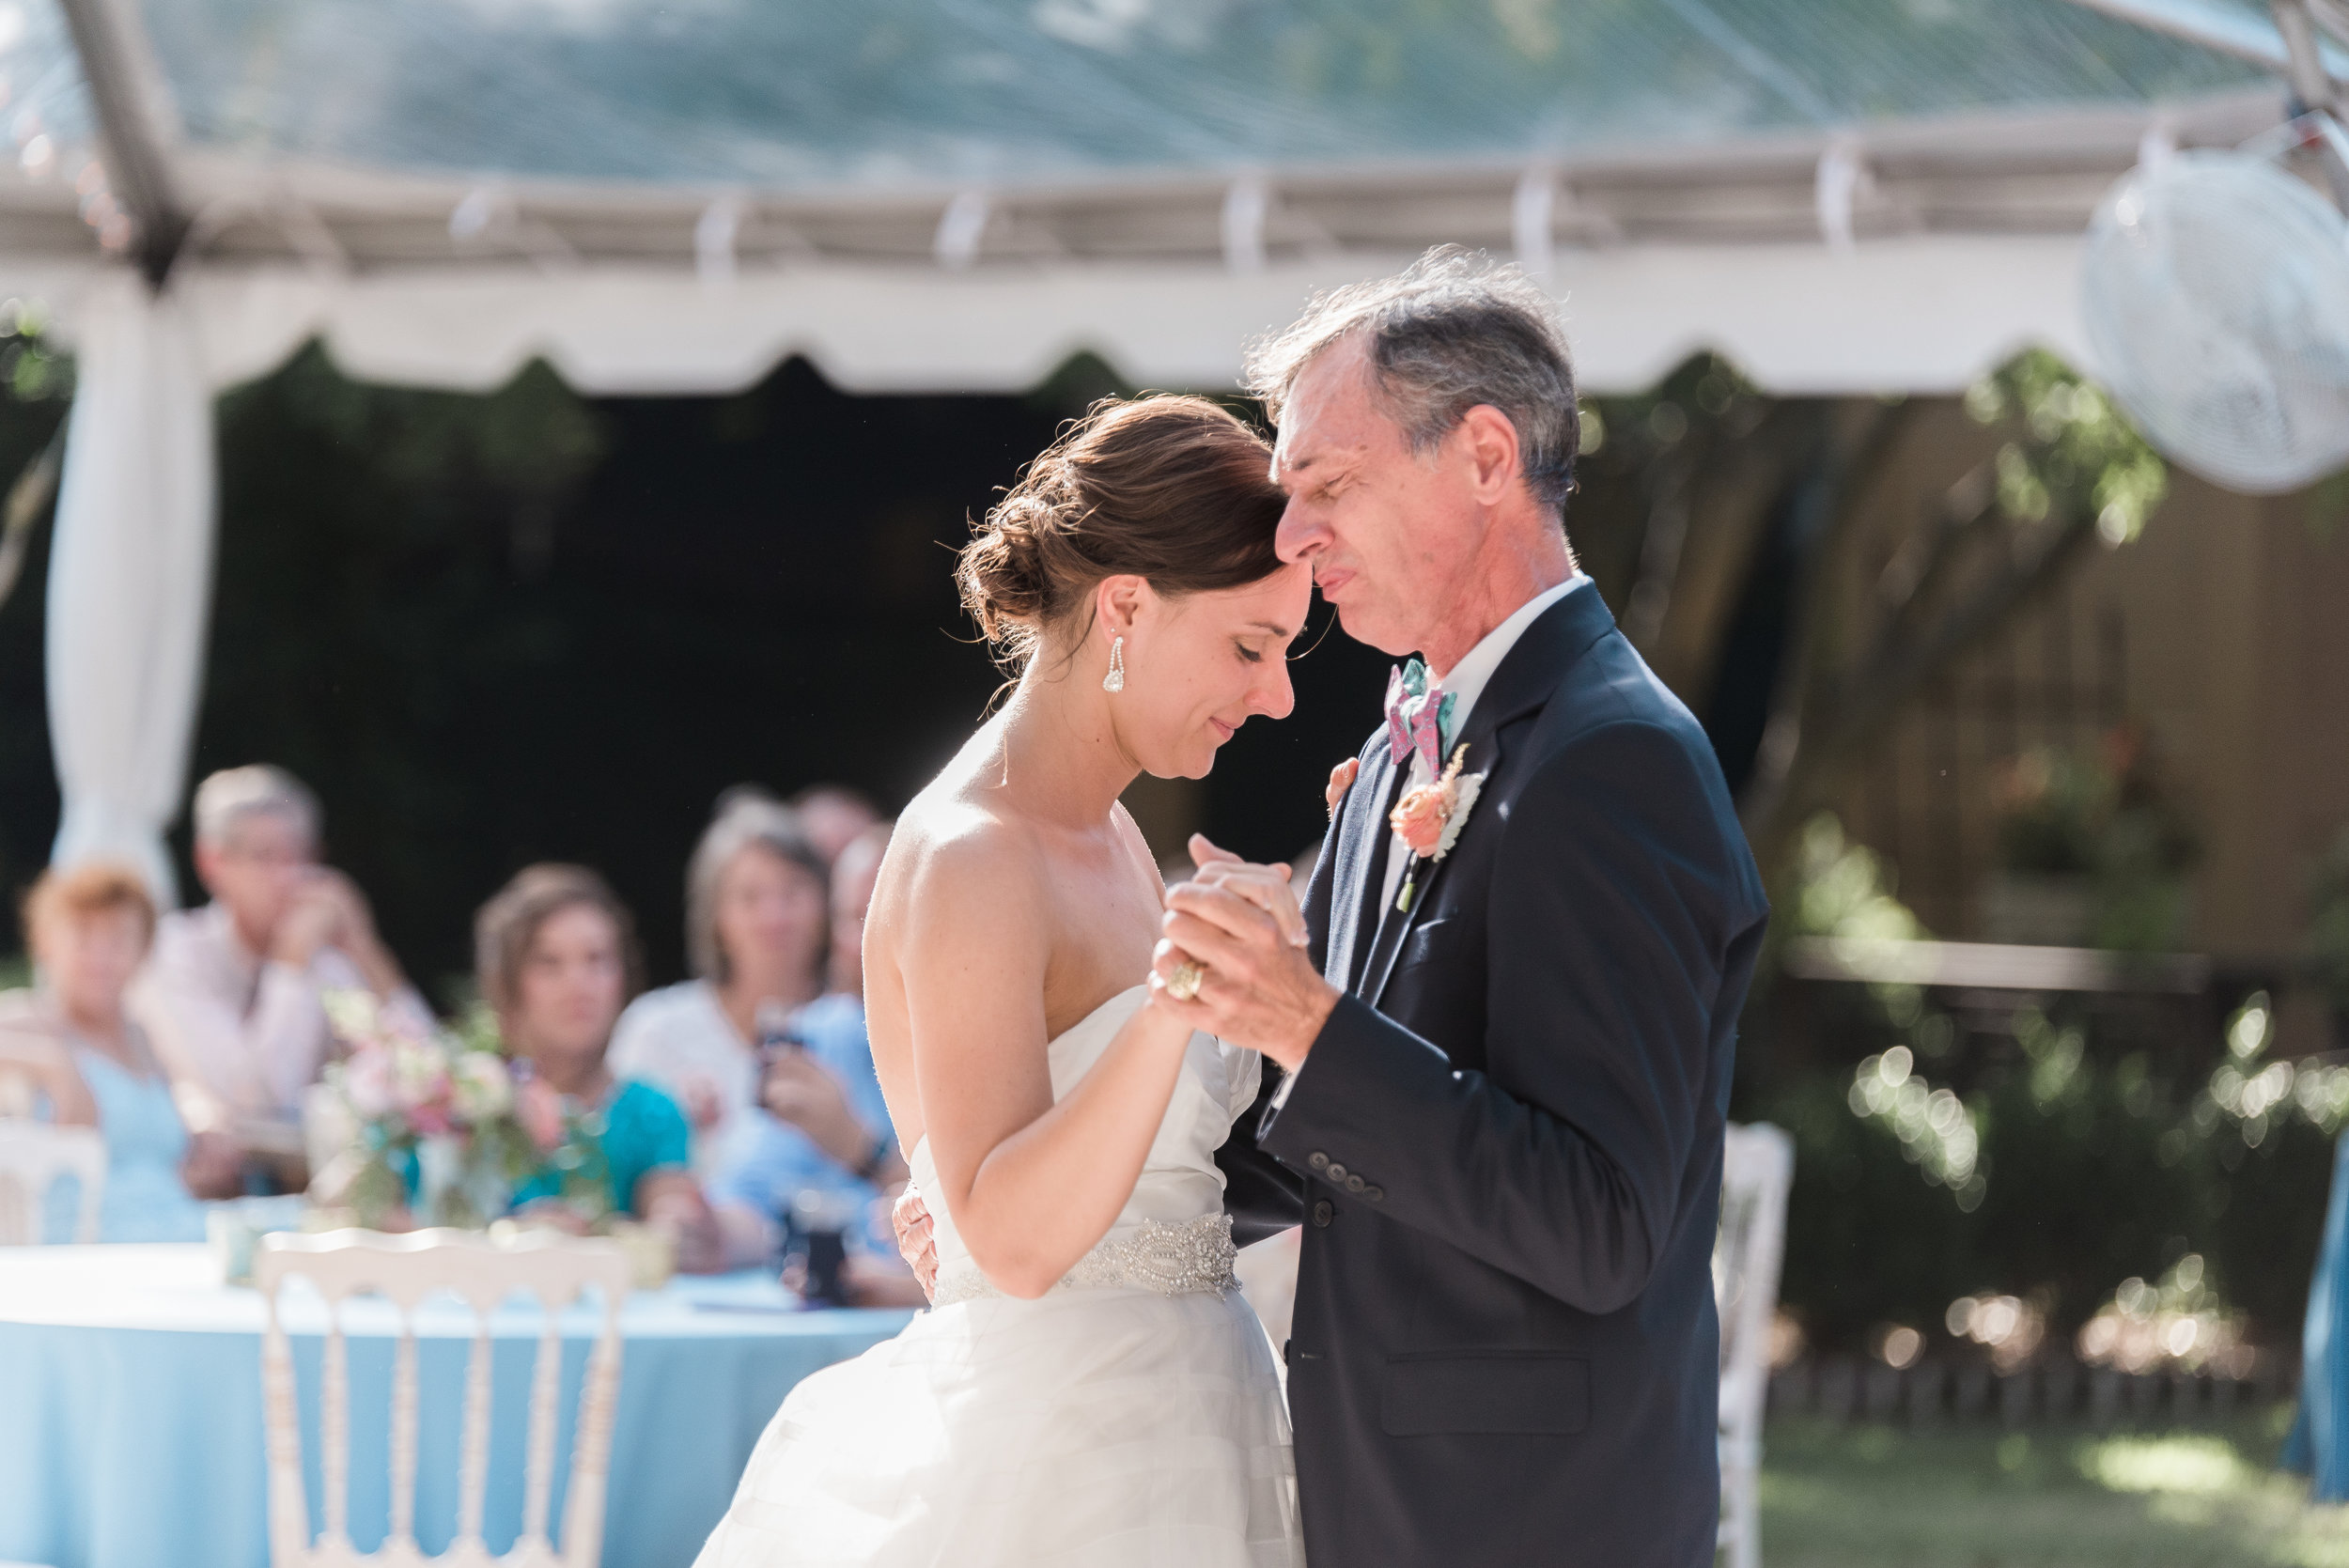 Father daughter first wedding dance played by Darby Events at The Thomas Bennett House  Colorful outdoor reception at The Thomas Bennett House wedding in Charleston, SC  //  photographed by Jenna Weddings  Traditional wedding ceremony at Cathedral of St. John the Baptist in Charleston, SC  //  A Lowcountry Wedding Magazine & Blog